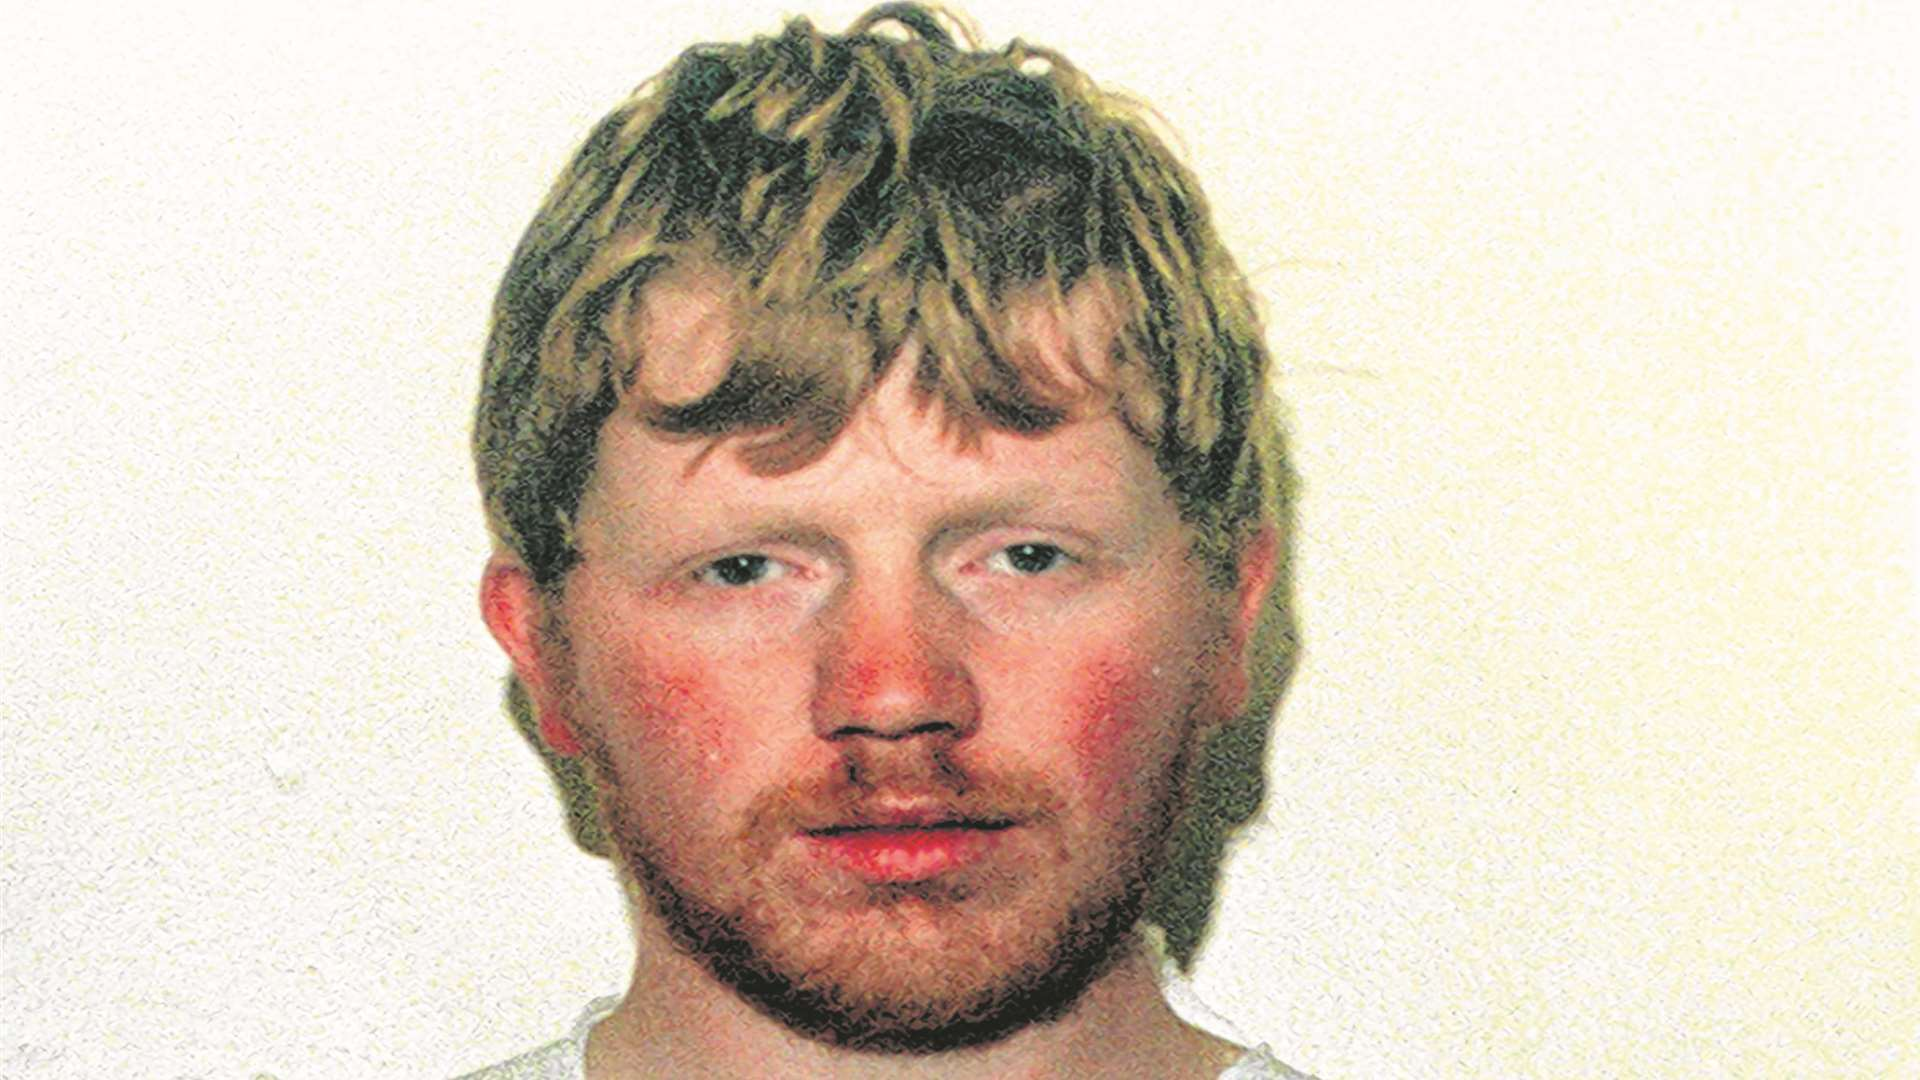 Colin Ash-Smith at the time of his arrest for the knife attack on a woman in Greenhithe in 1995